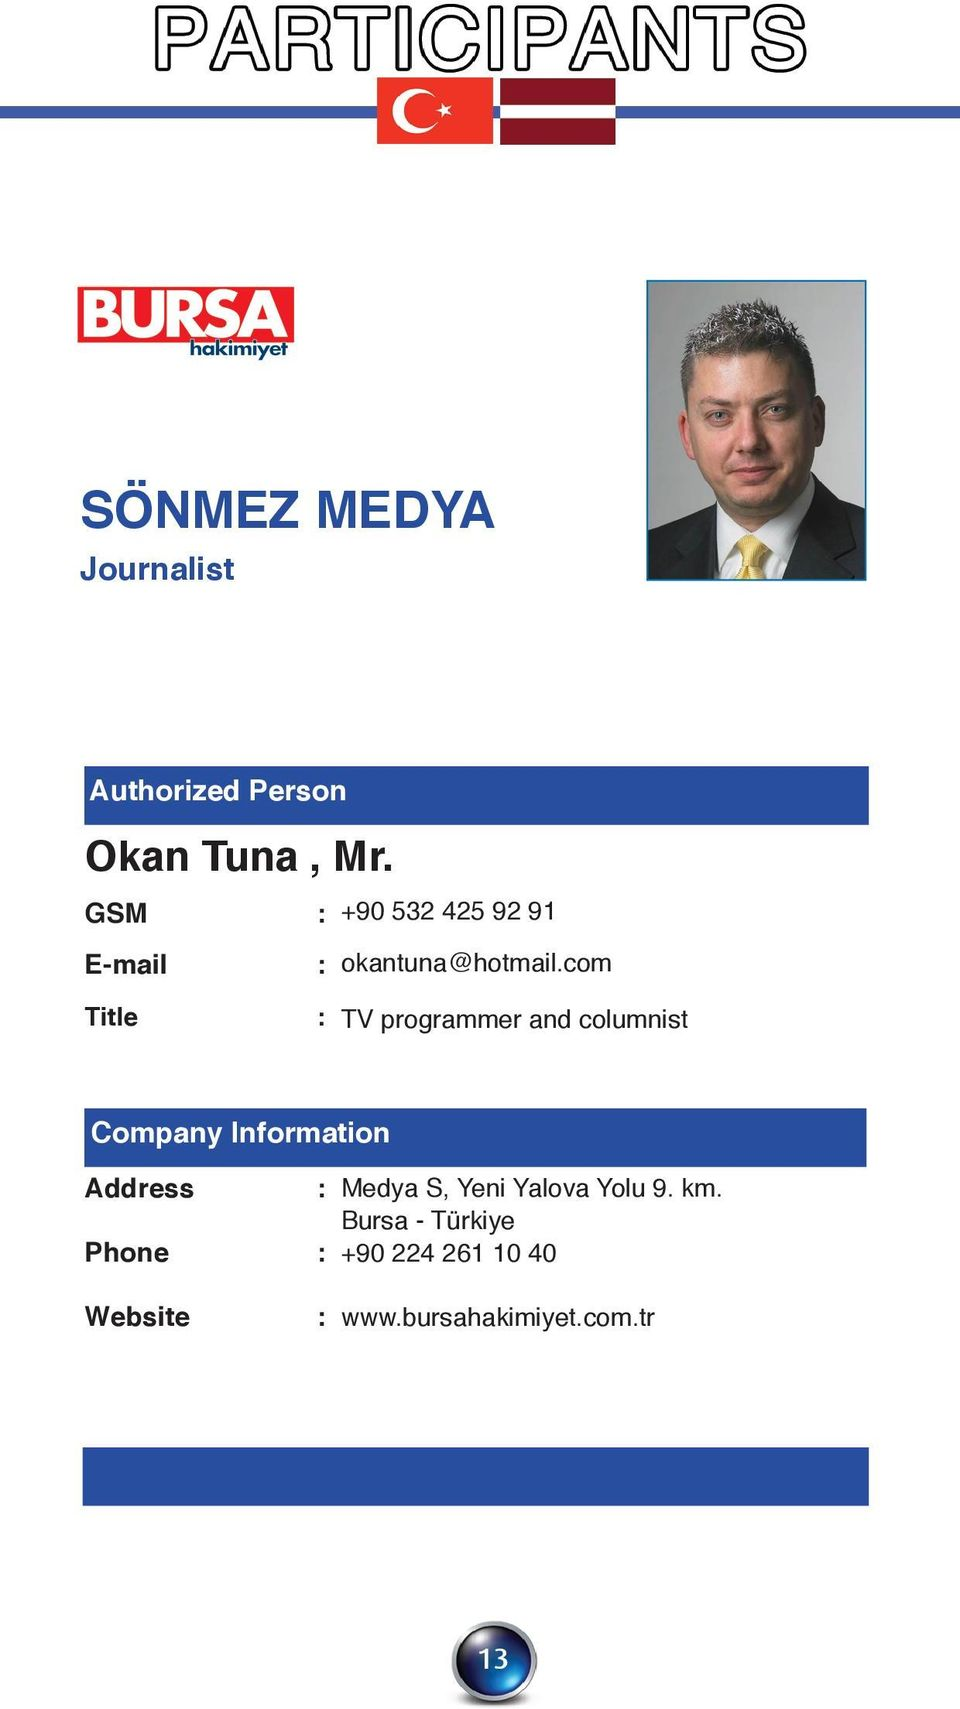 com Title : TV programmer and columnist Medya S, Yeni